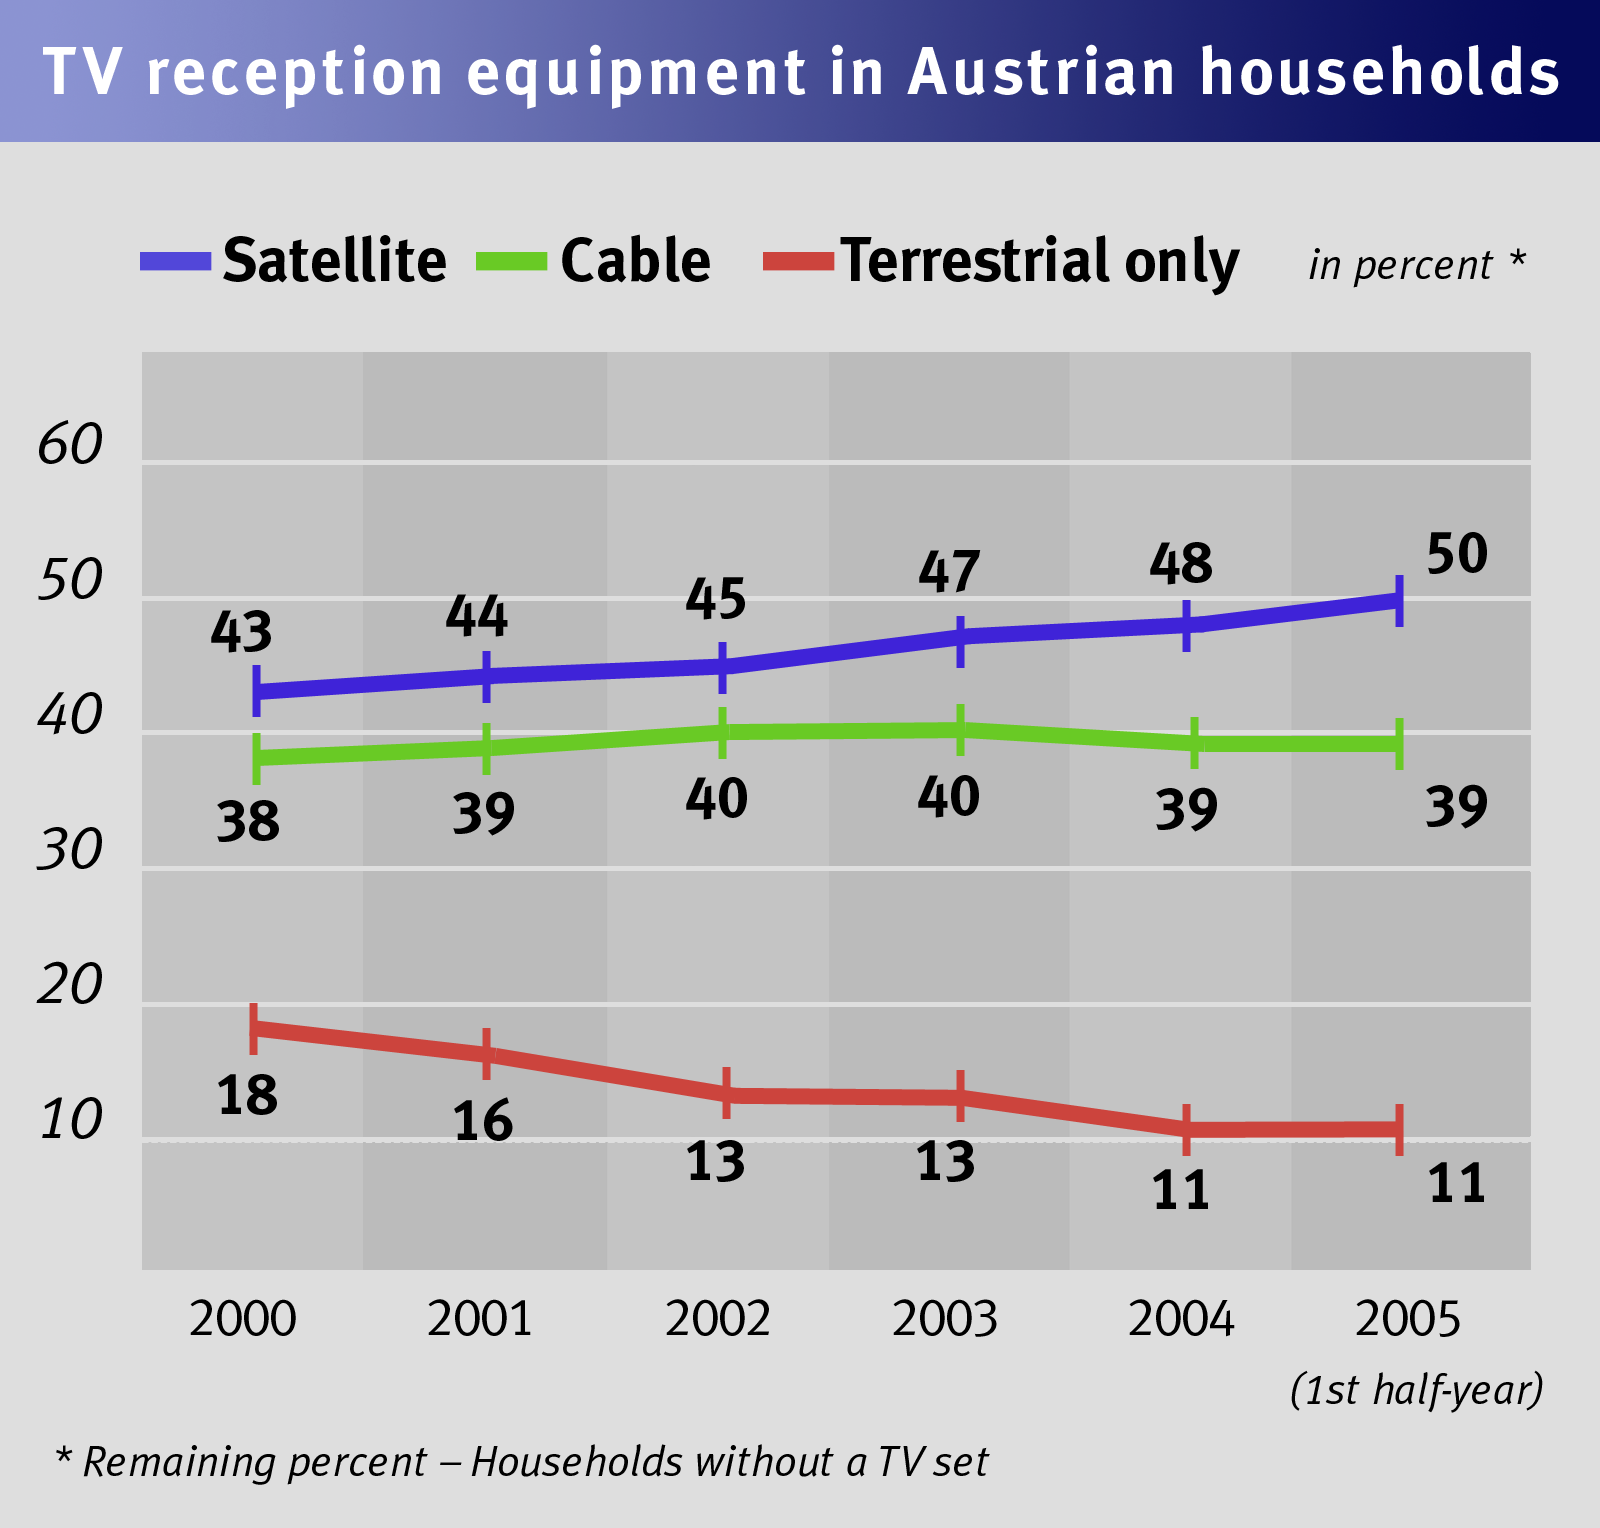 Digital terrestrial television guarantees unhampered basic TV coverage Despite the current distribution of the TV reception market in Austria households served by cable and satellite account for